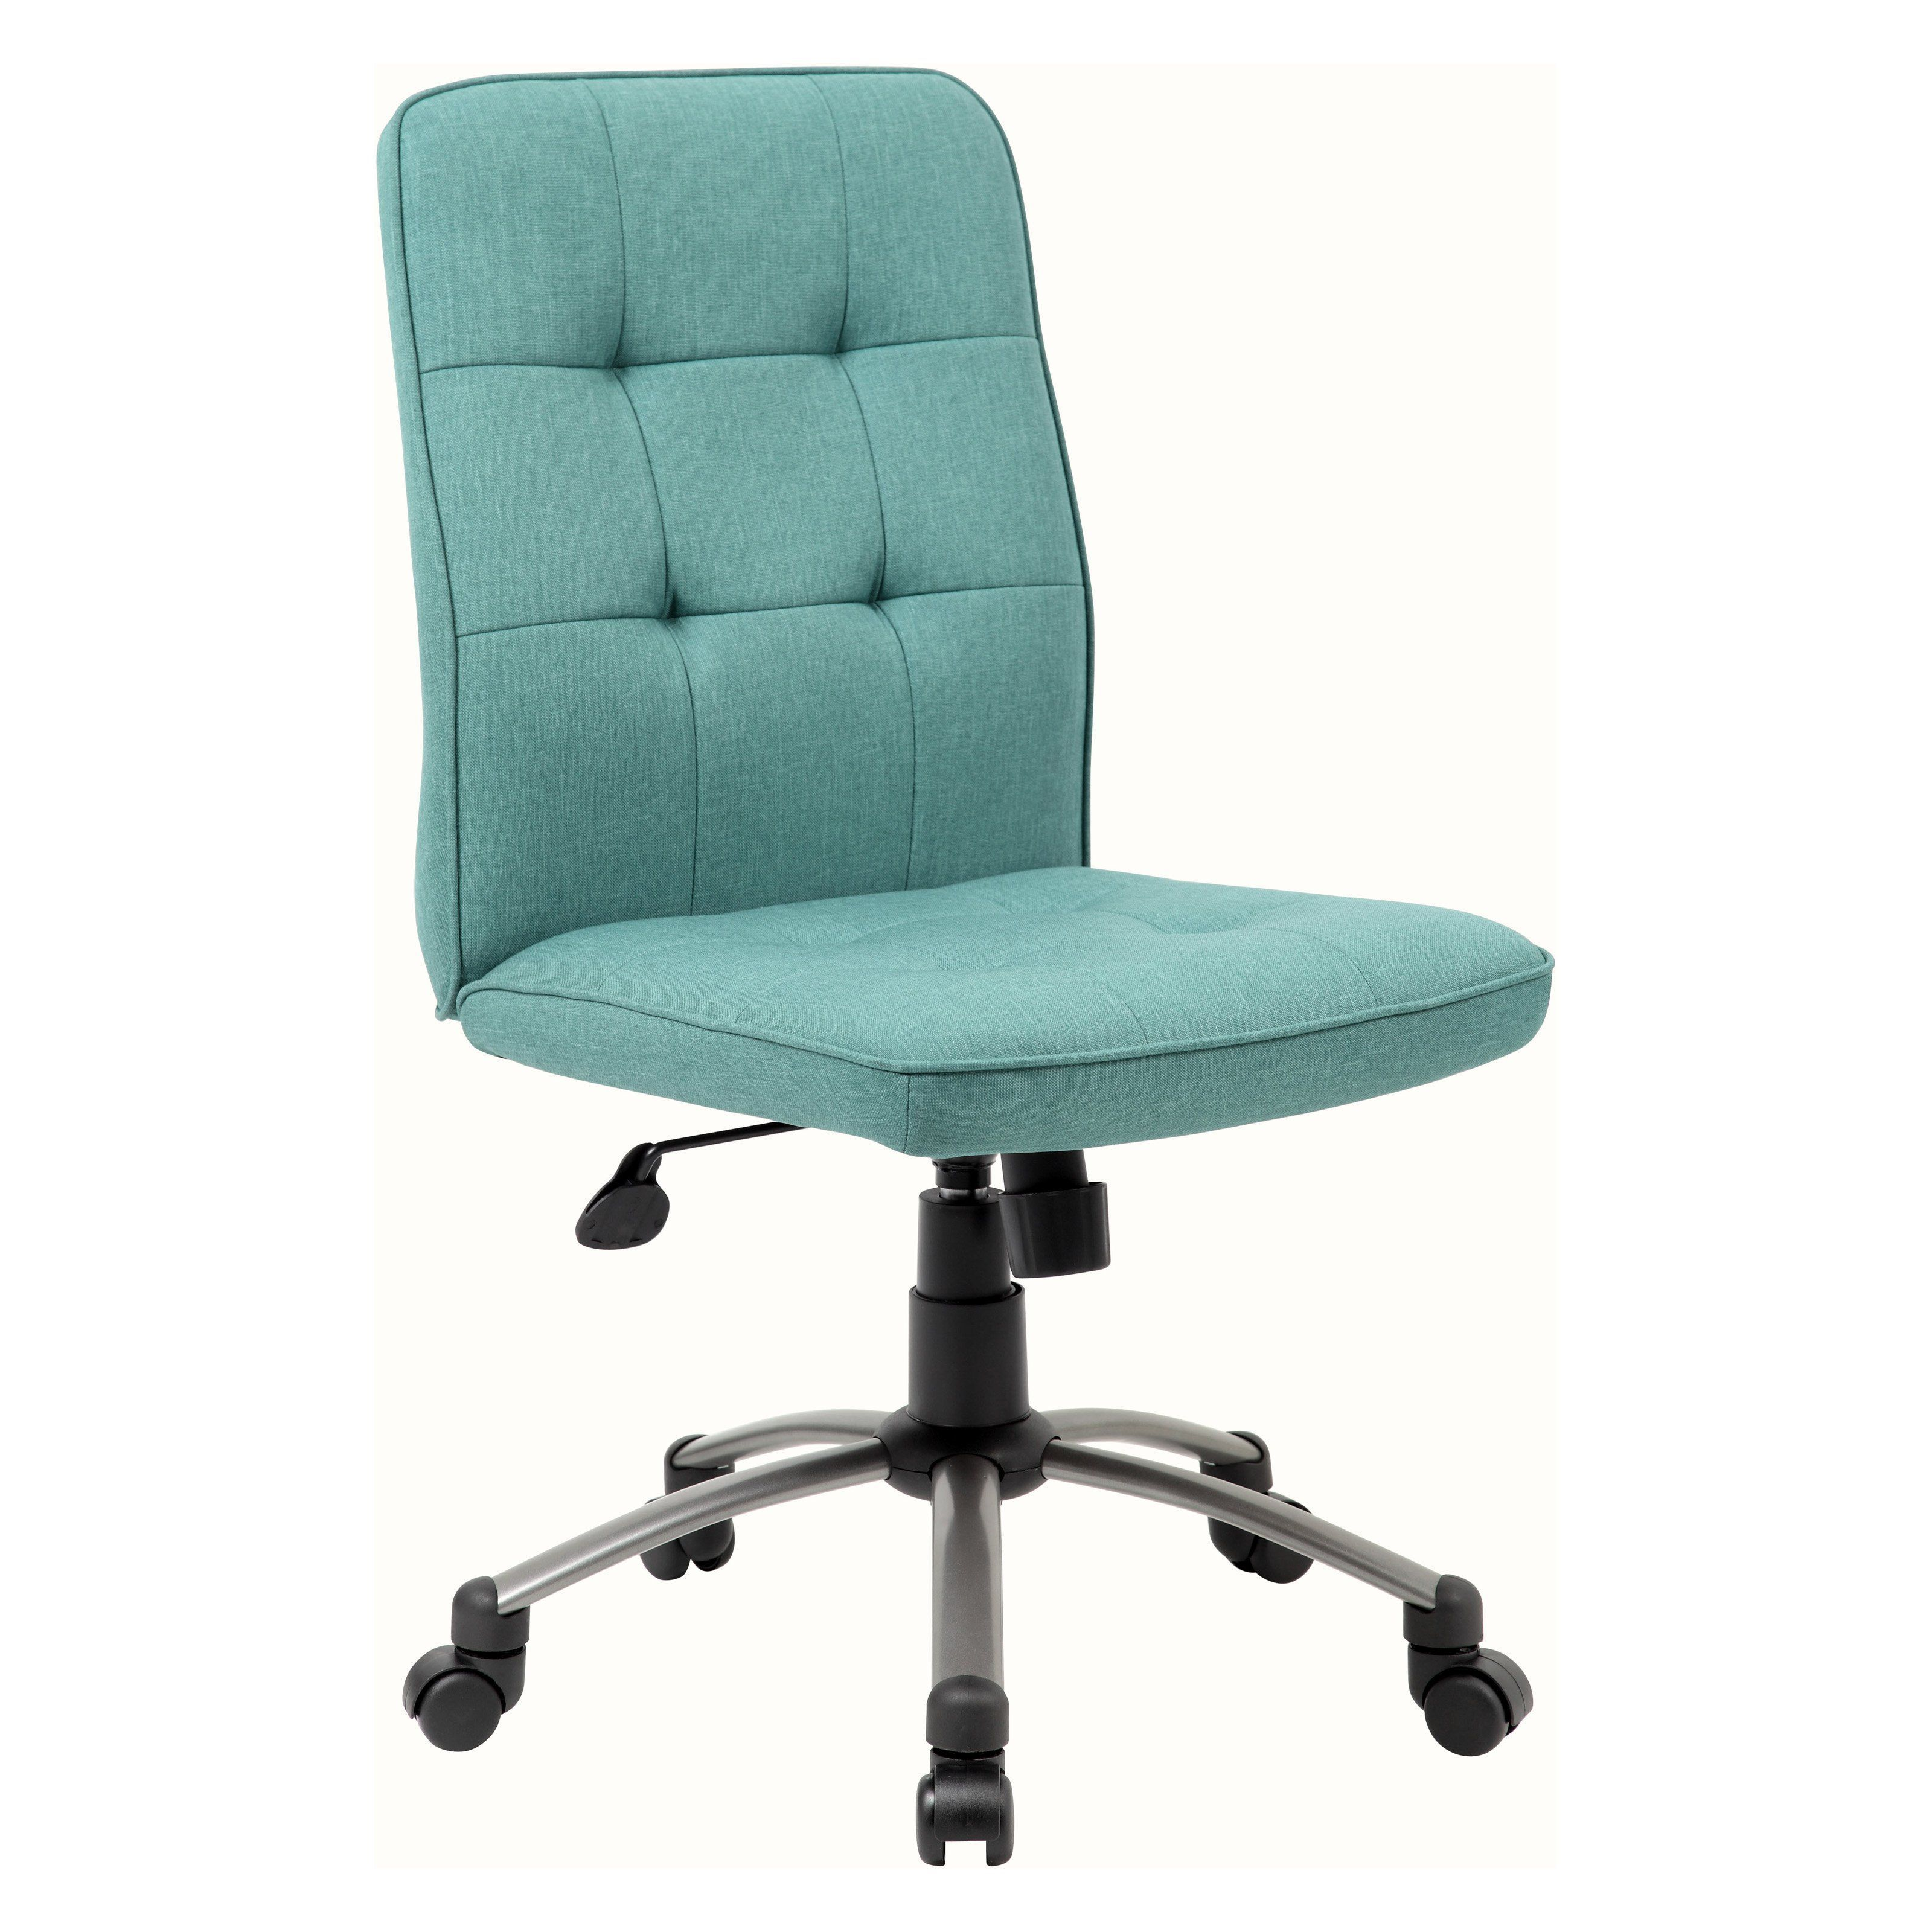 Boss Millennial Modern Office Chair Modern office chair